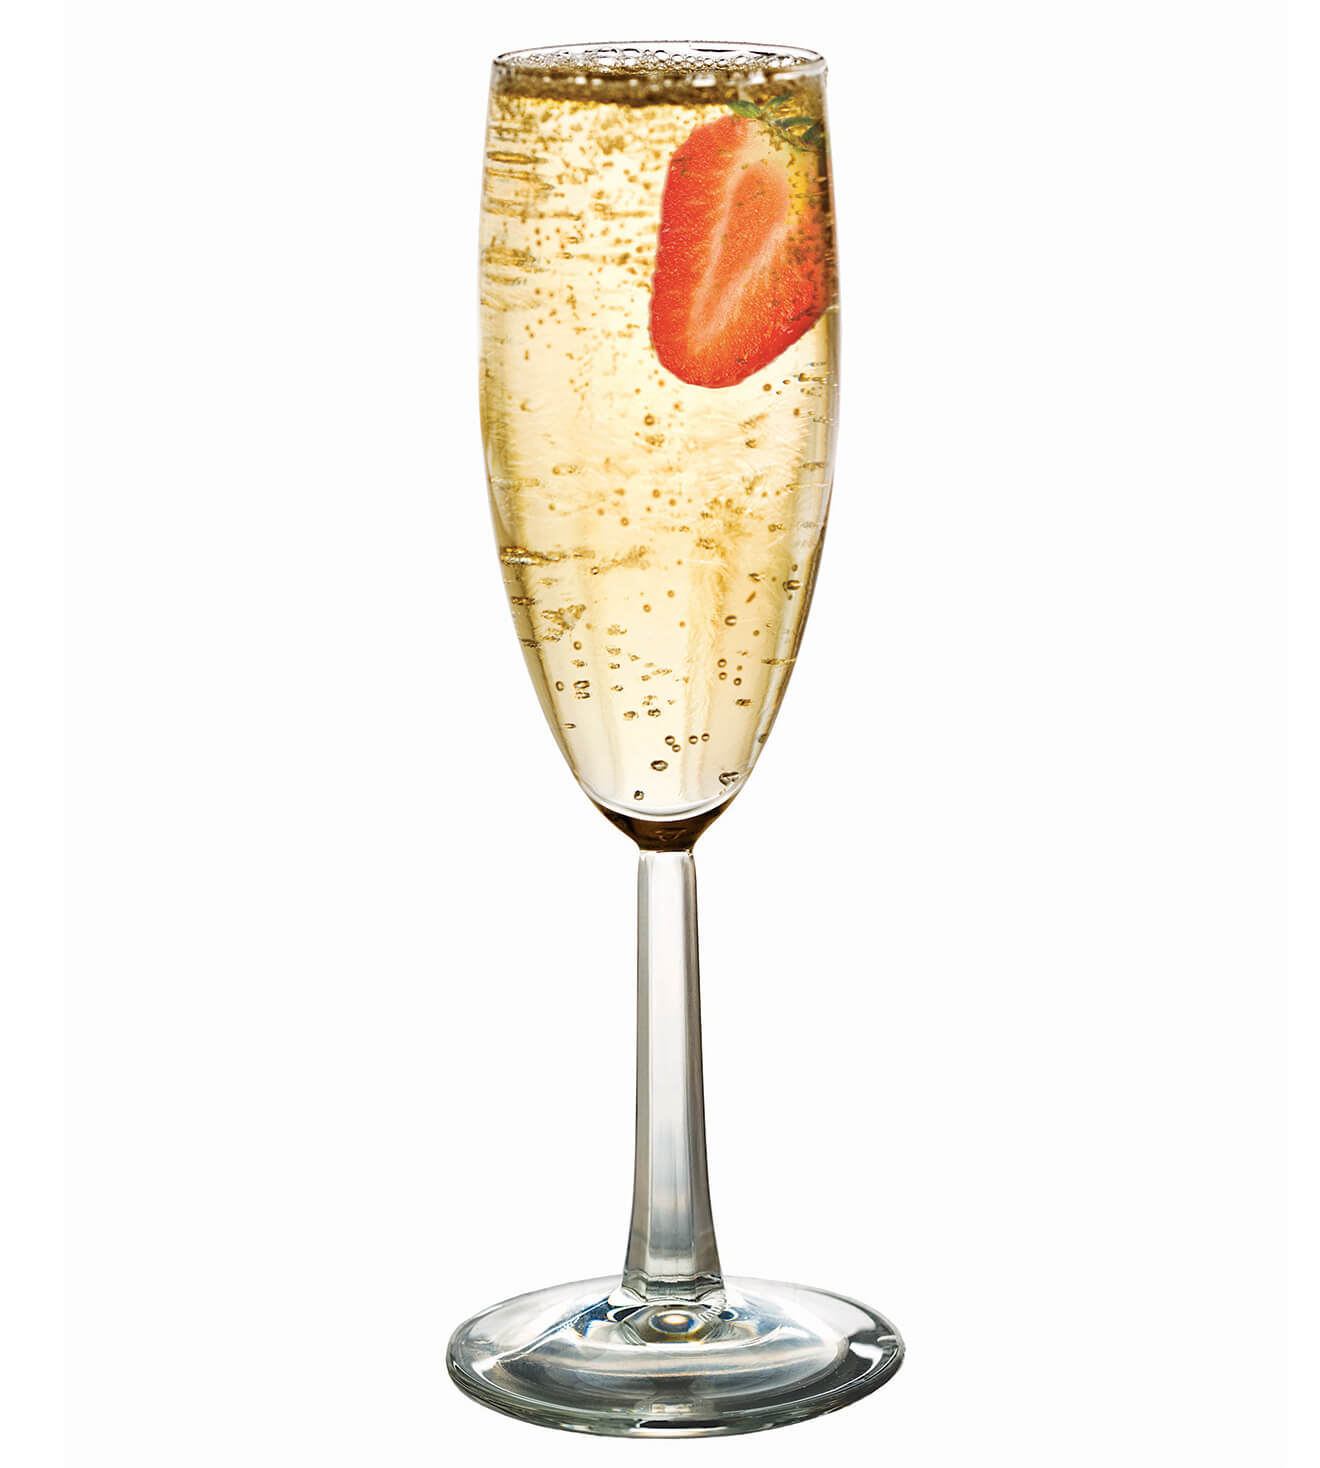 St-Germain and Champagne